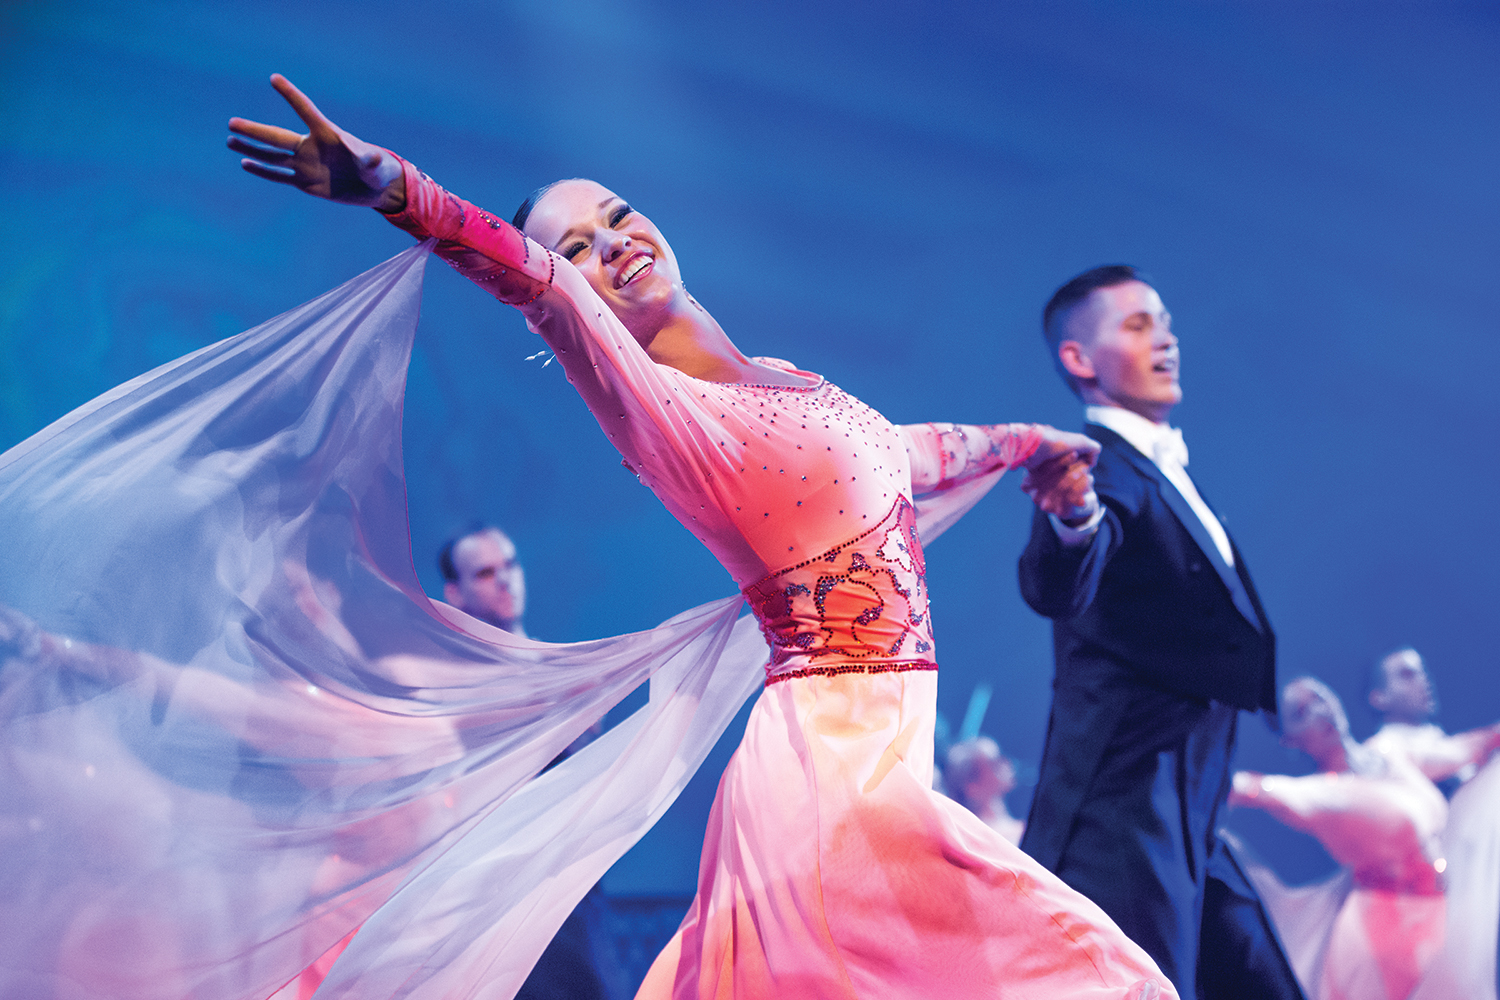 BYU Ballroom Dance Company will also perform.